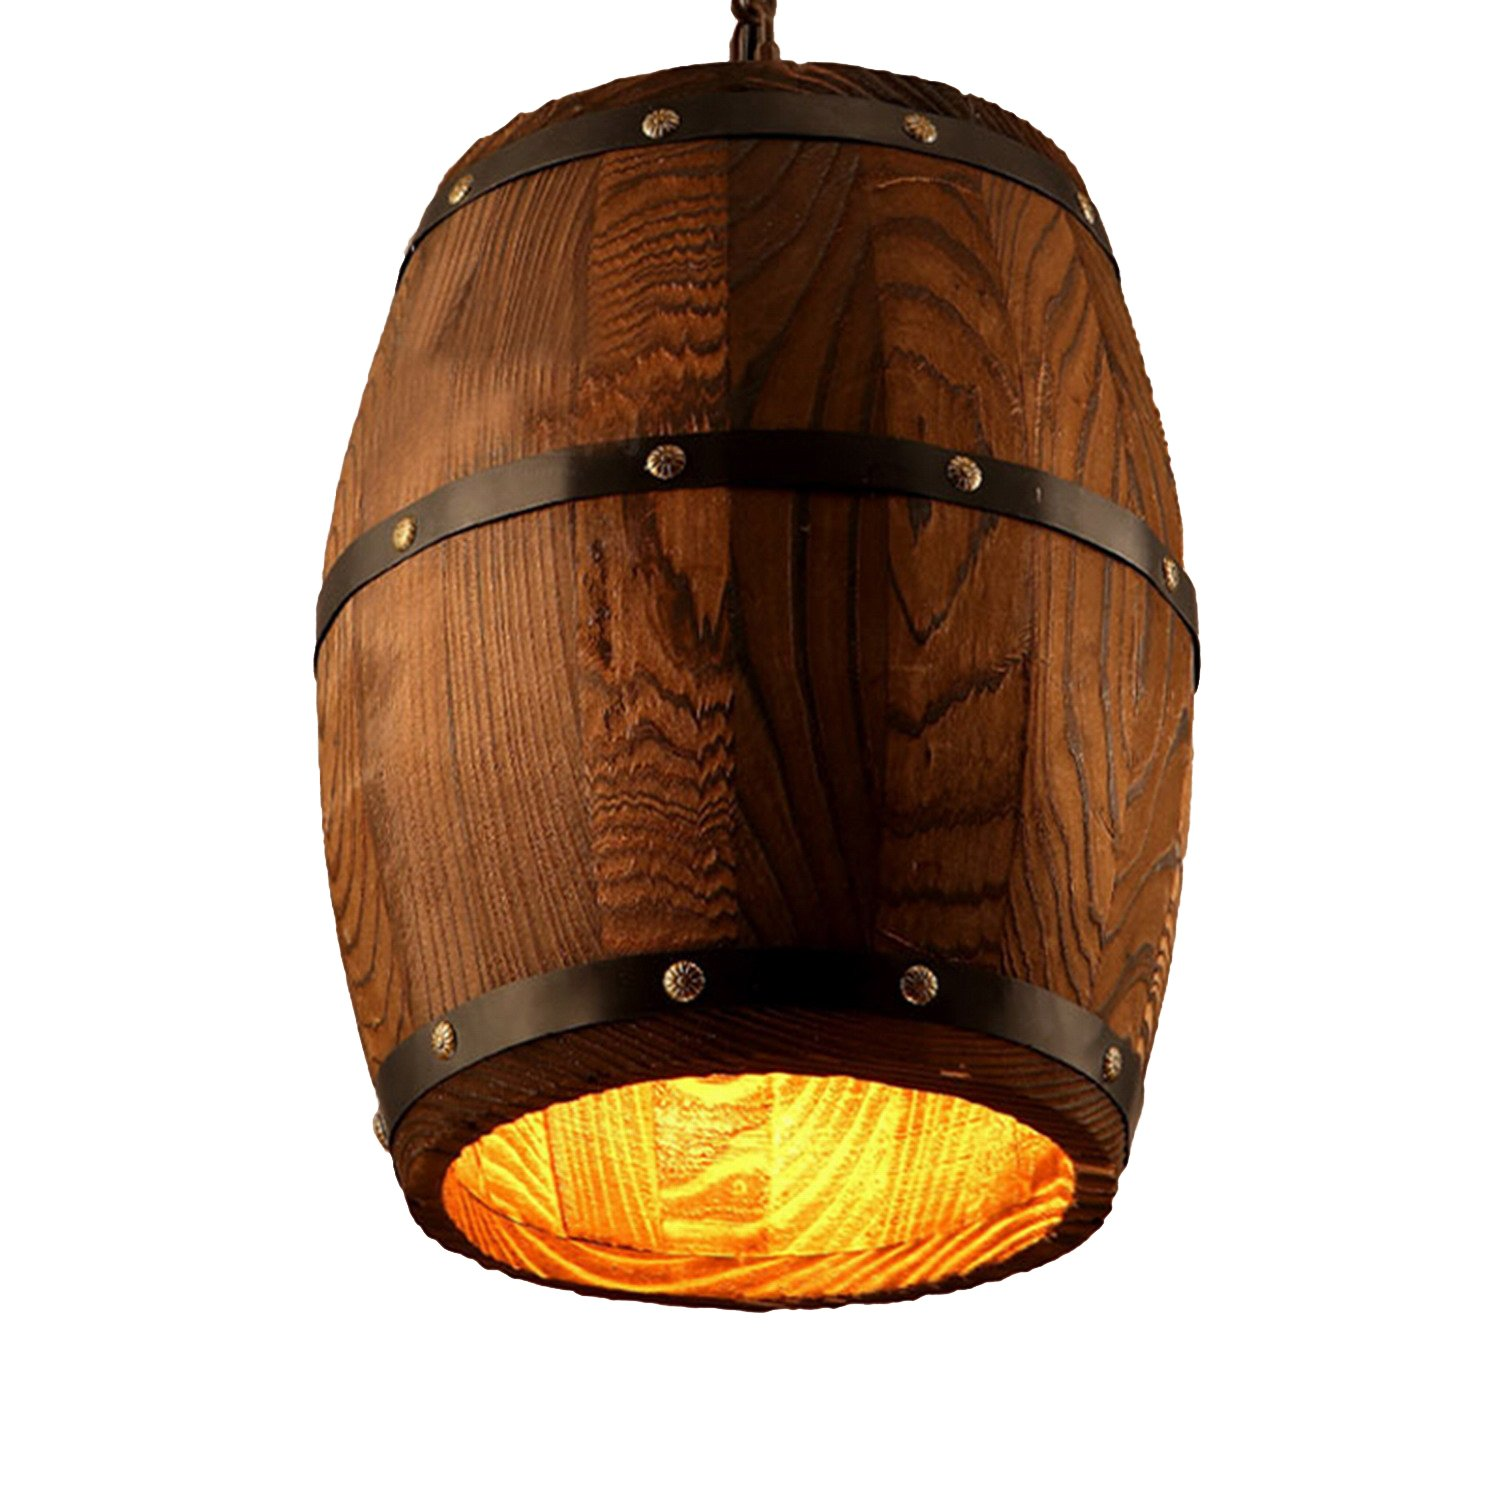 Newrays Antique Wood Wine Barrel Pendant Lamp Hanging Rustic Unique Kitchen Bar Ceiling Lamp Light Fixtures